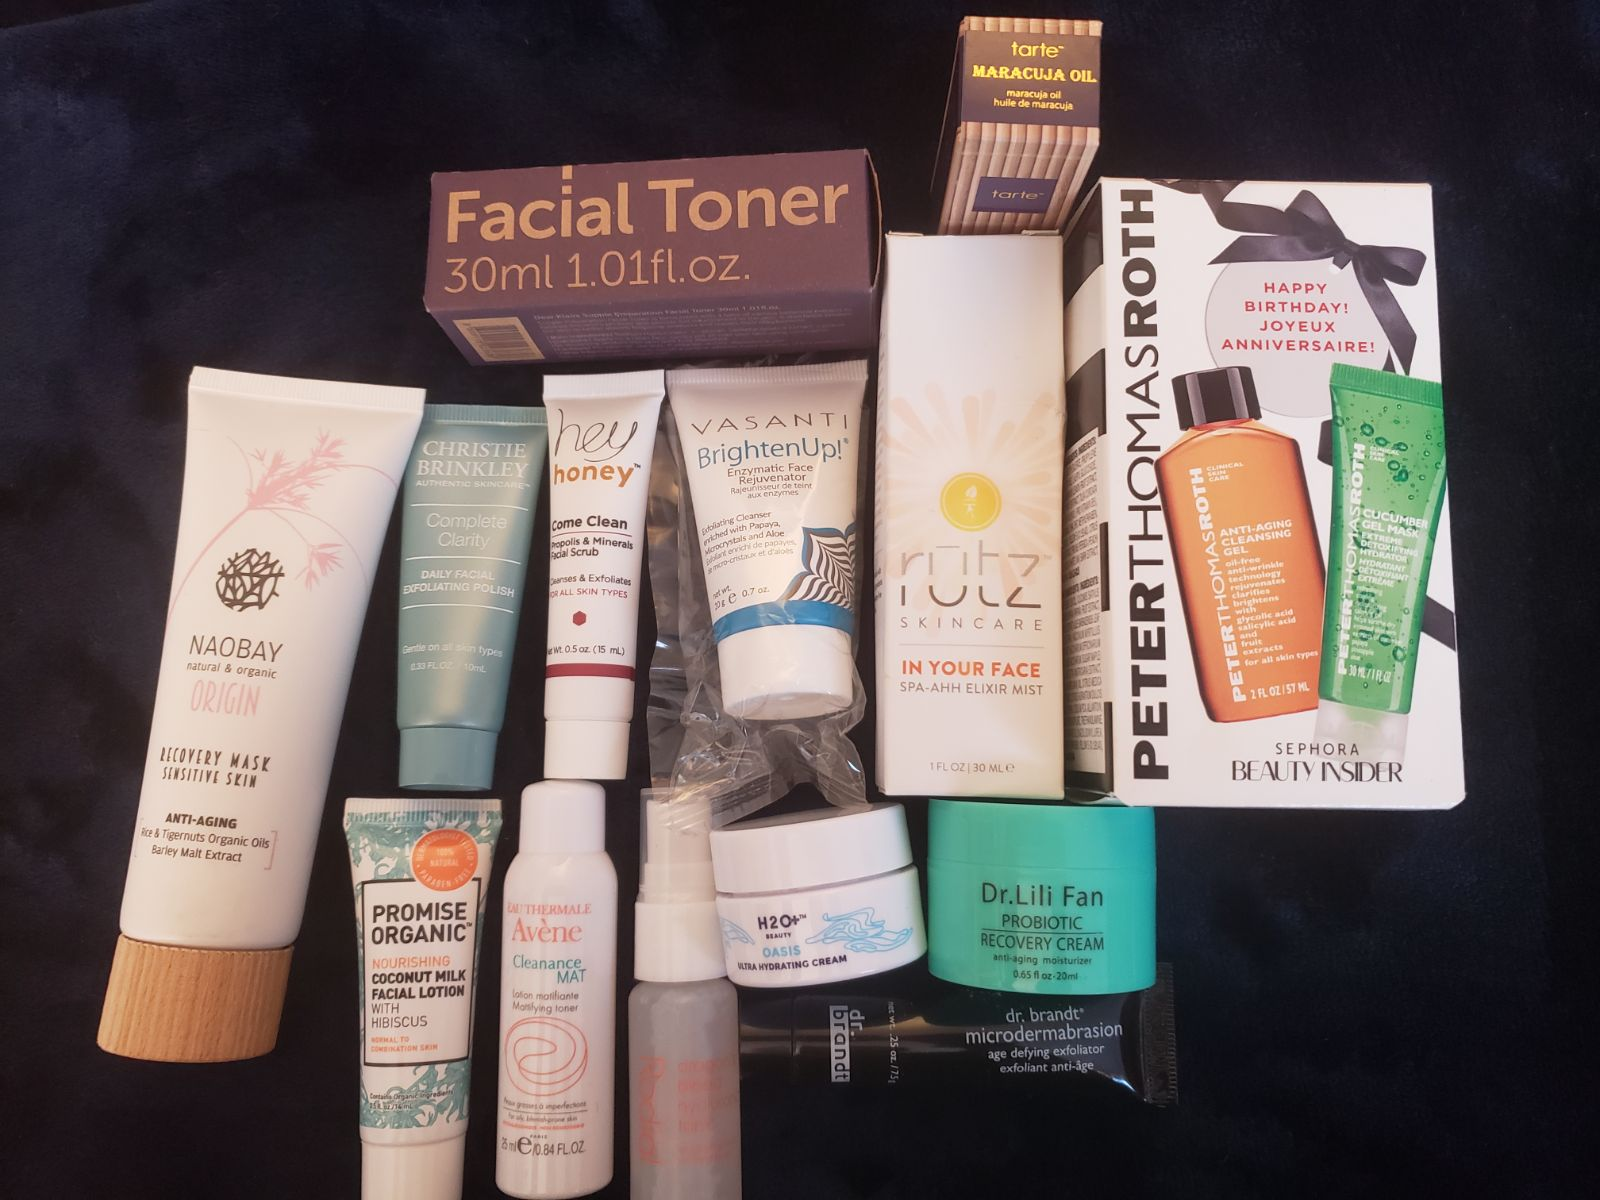 Facial / spa day bundle